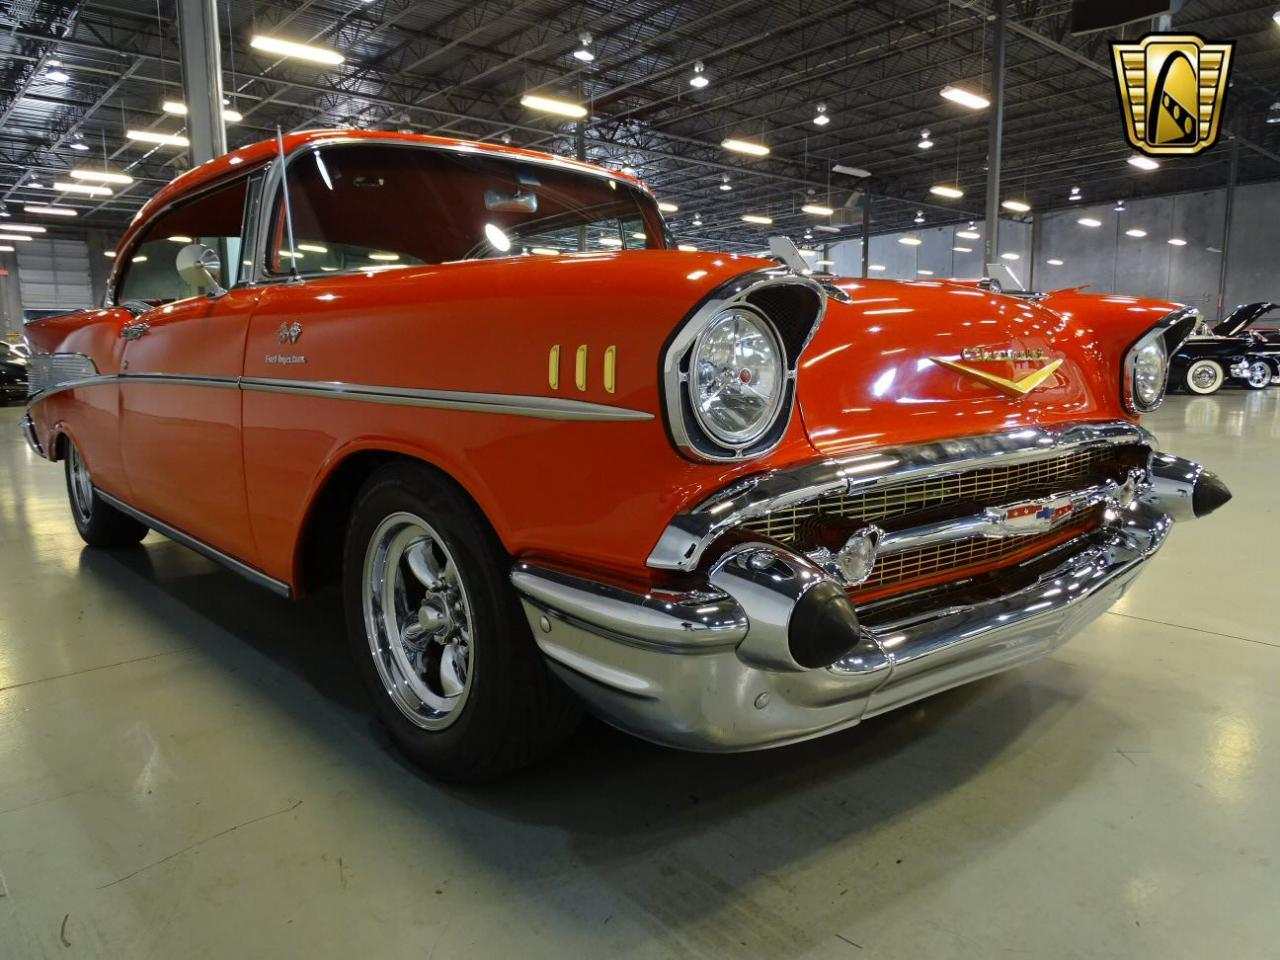 Large Picture of 1957 Chevrolet Bel Air - $89,000.00 Offered by Gateway Classic Cars - Orlando - KDSS